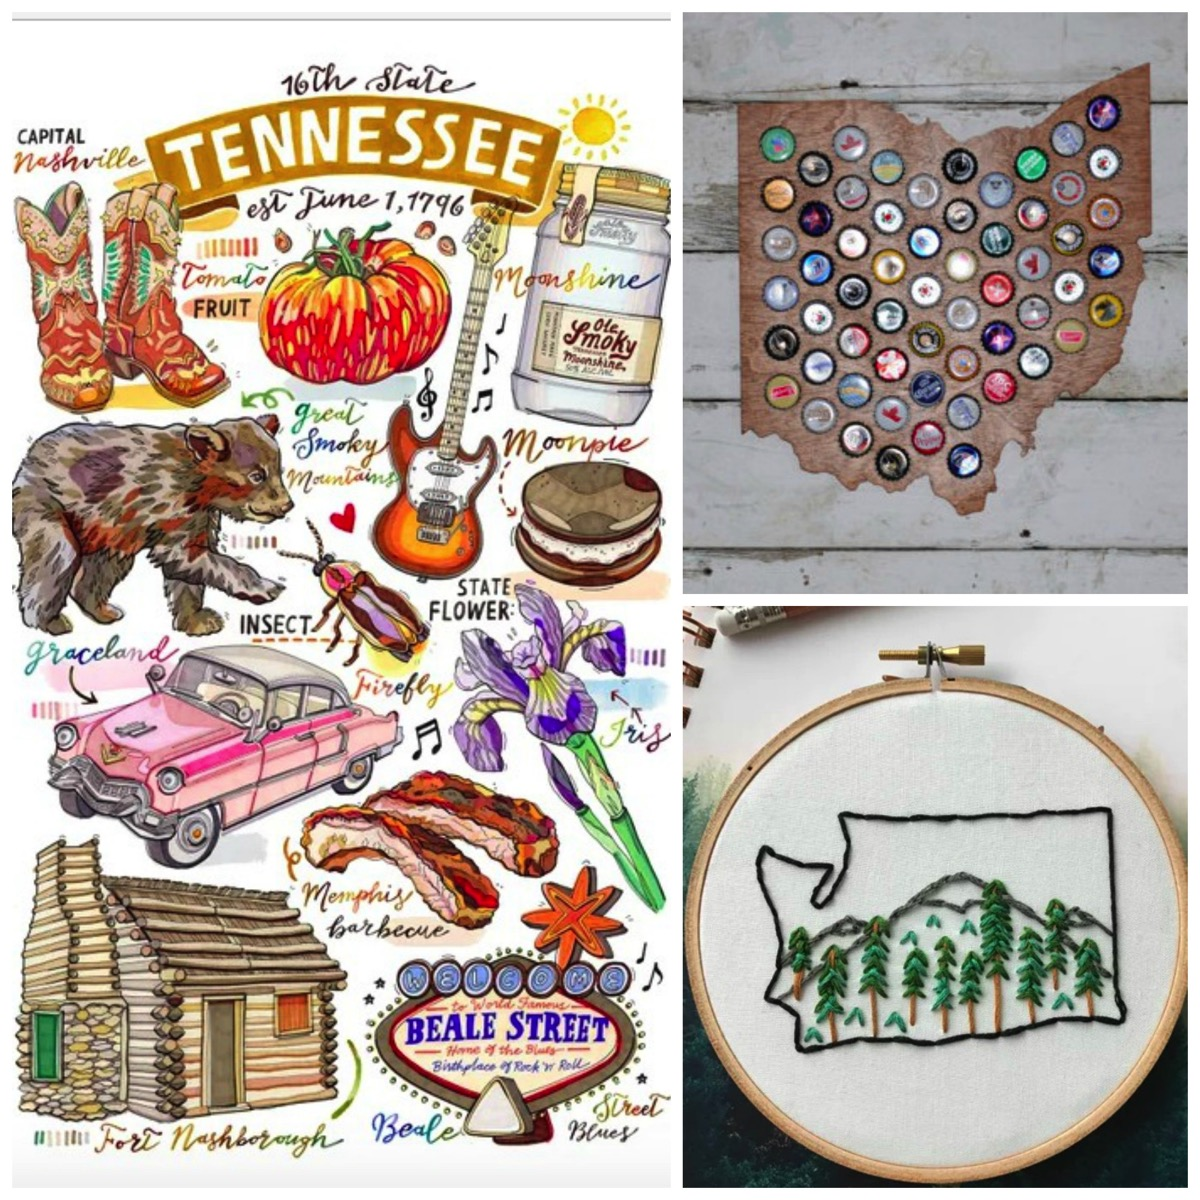 Top 10 etsy fifty state gifts for house warming and weddings